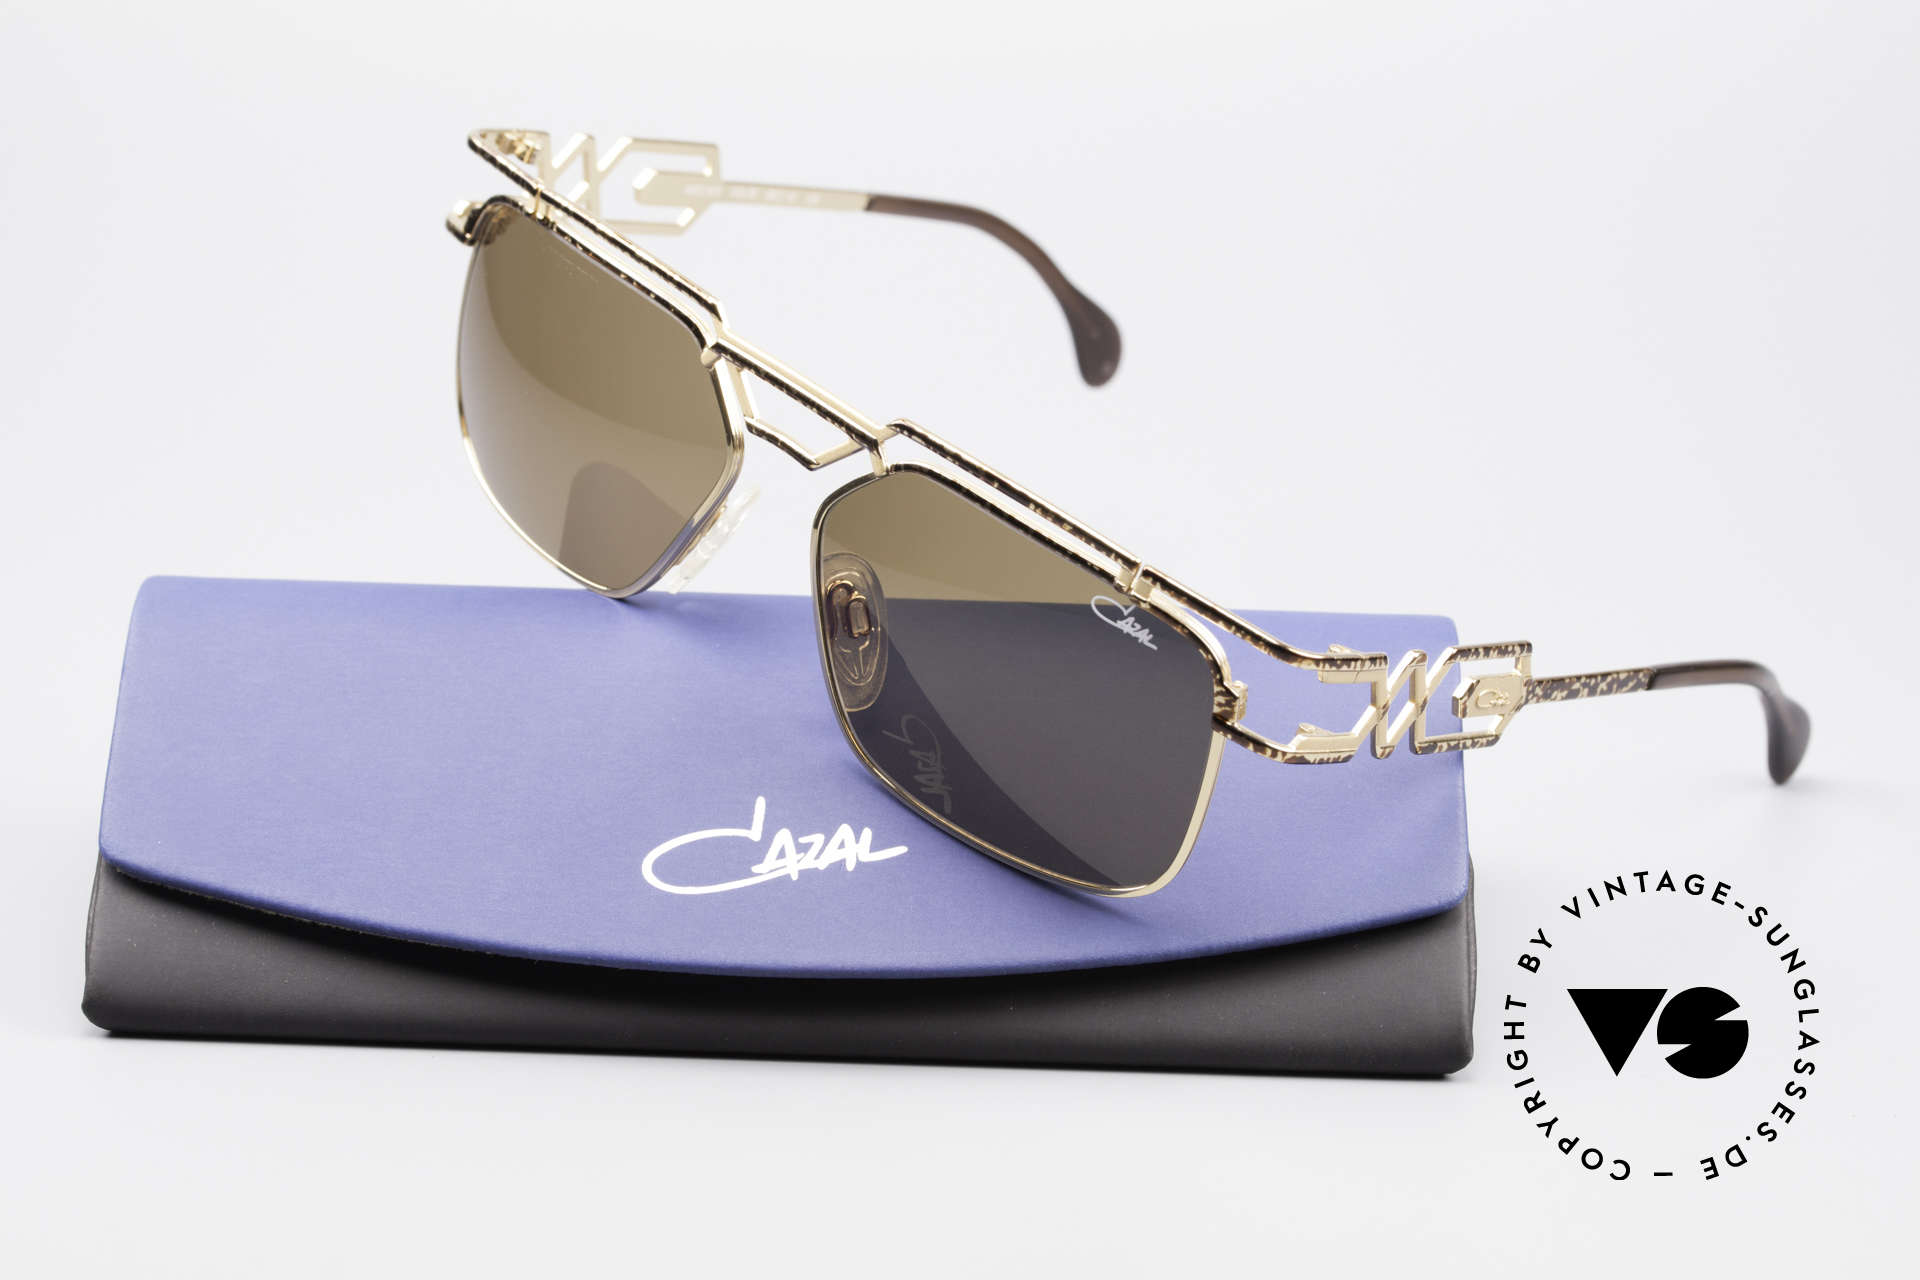 Cazal 973 90's Sunglasses Women Men, a real 'MUST HAVE' for all lovers of quality and design!, Made for Men and Women